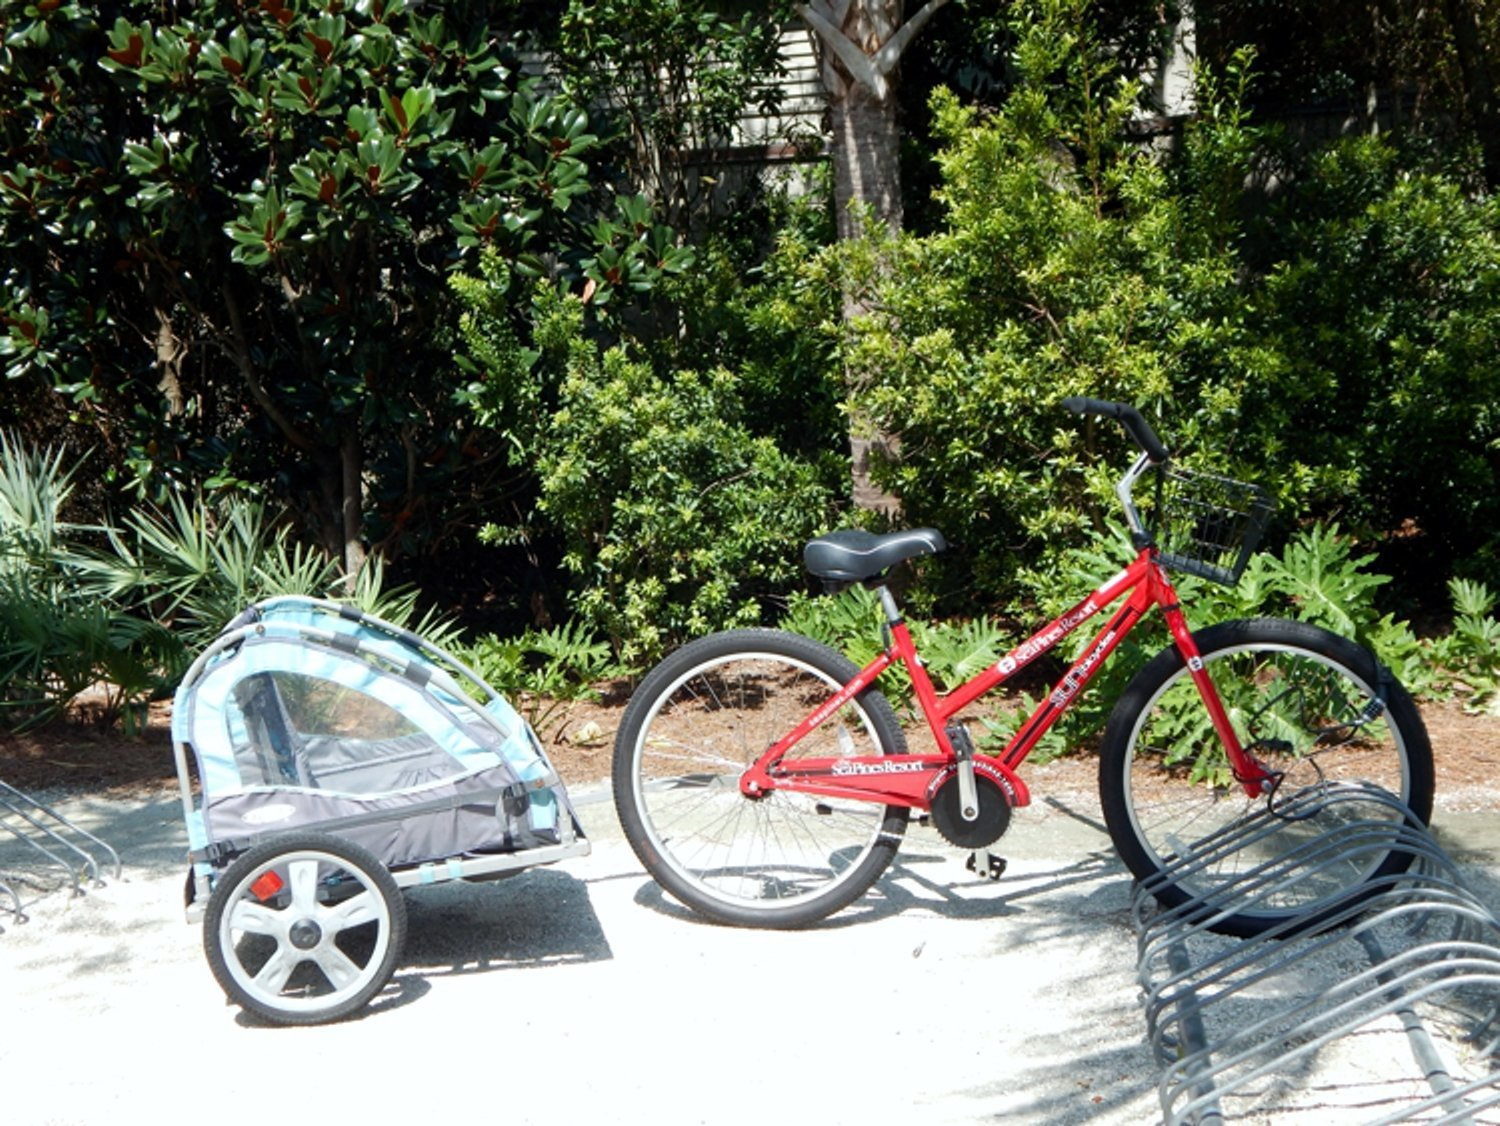 Red bicycle at Hilton Head Island beach